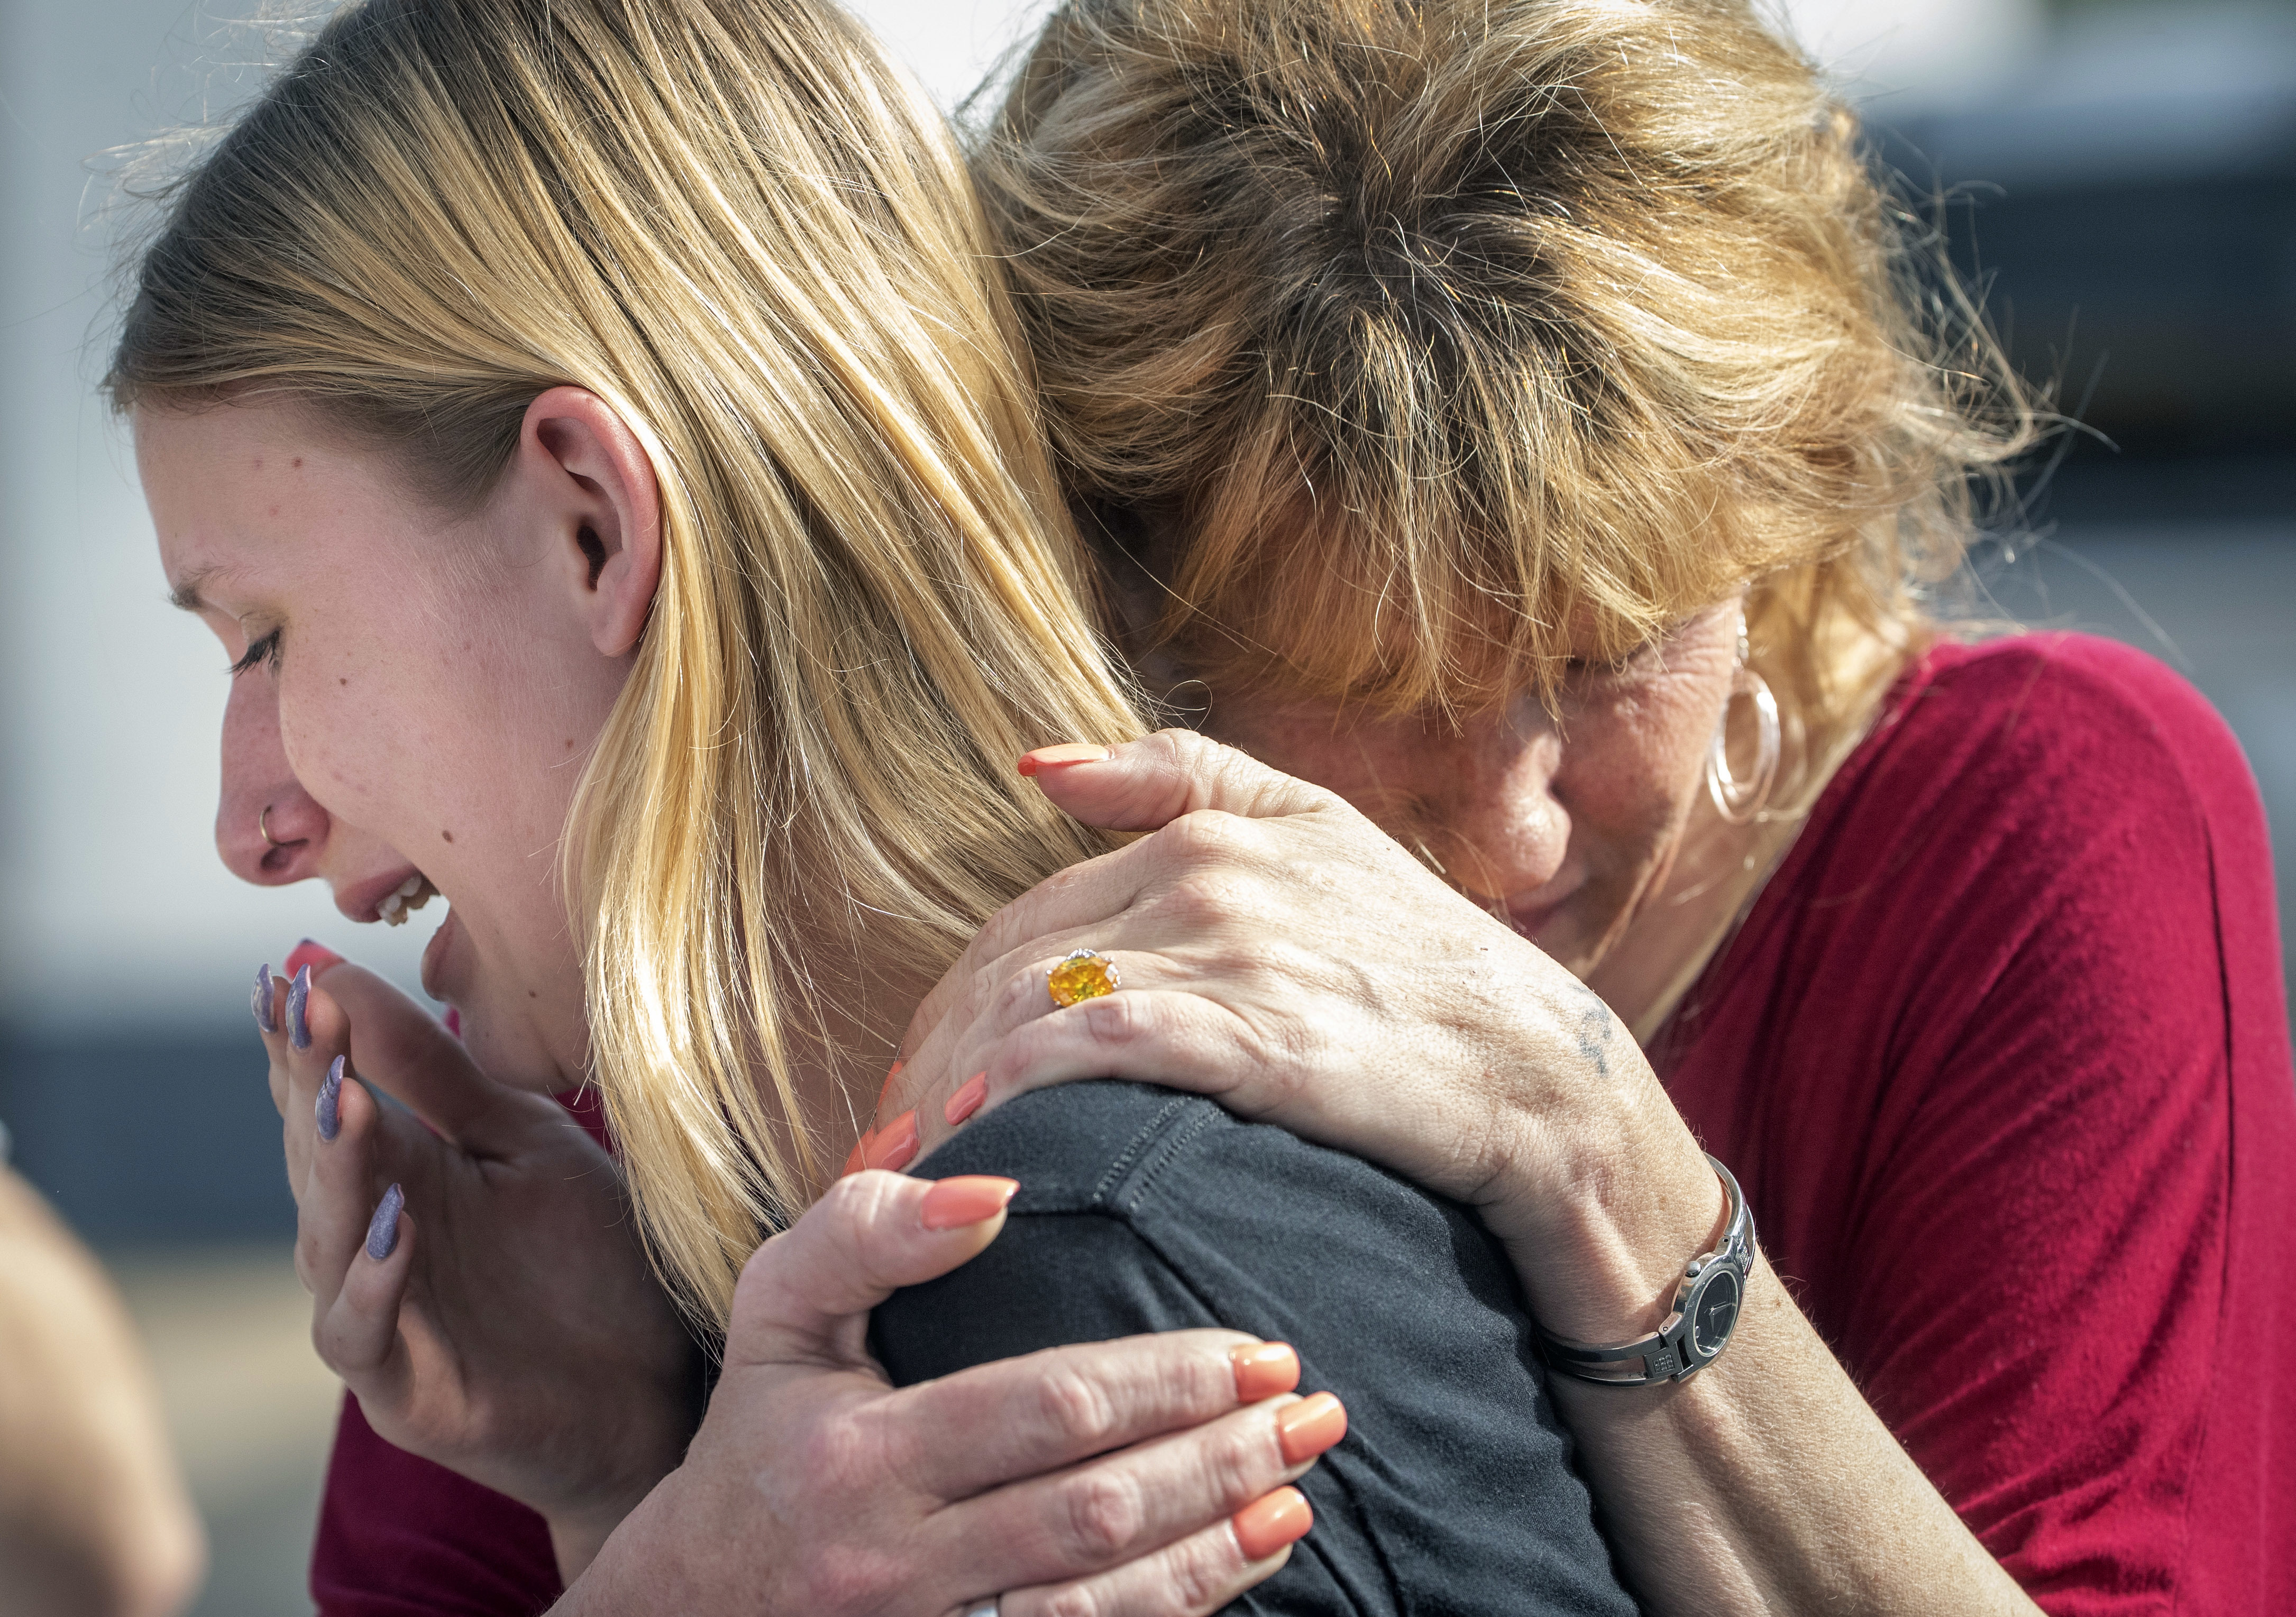 Dakota Shrader and her mom after a shooting at Santa Fe High School in Texas on May 18, 2018